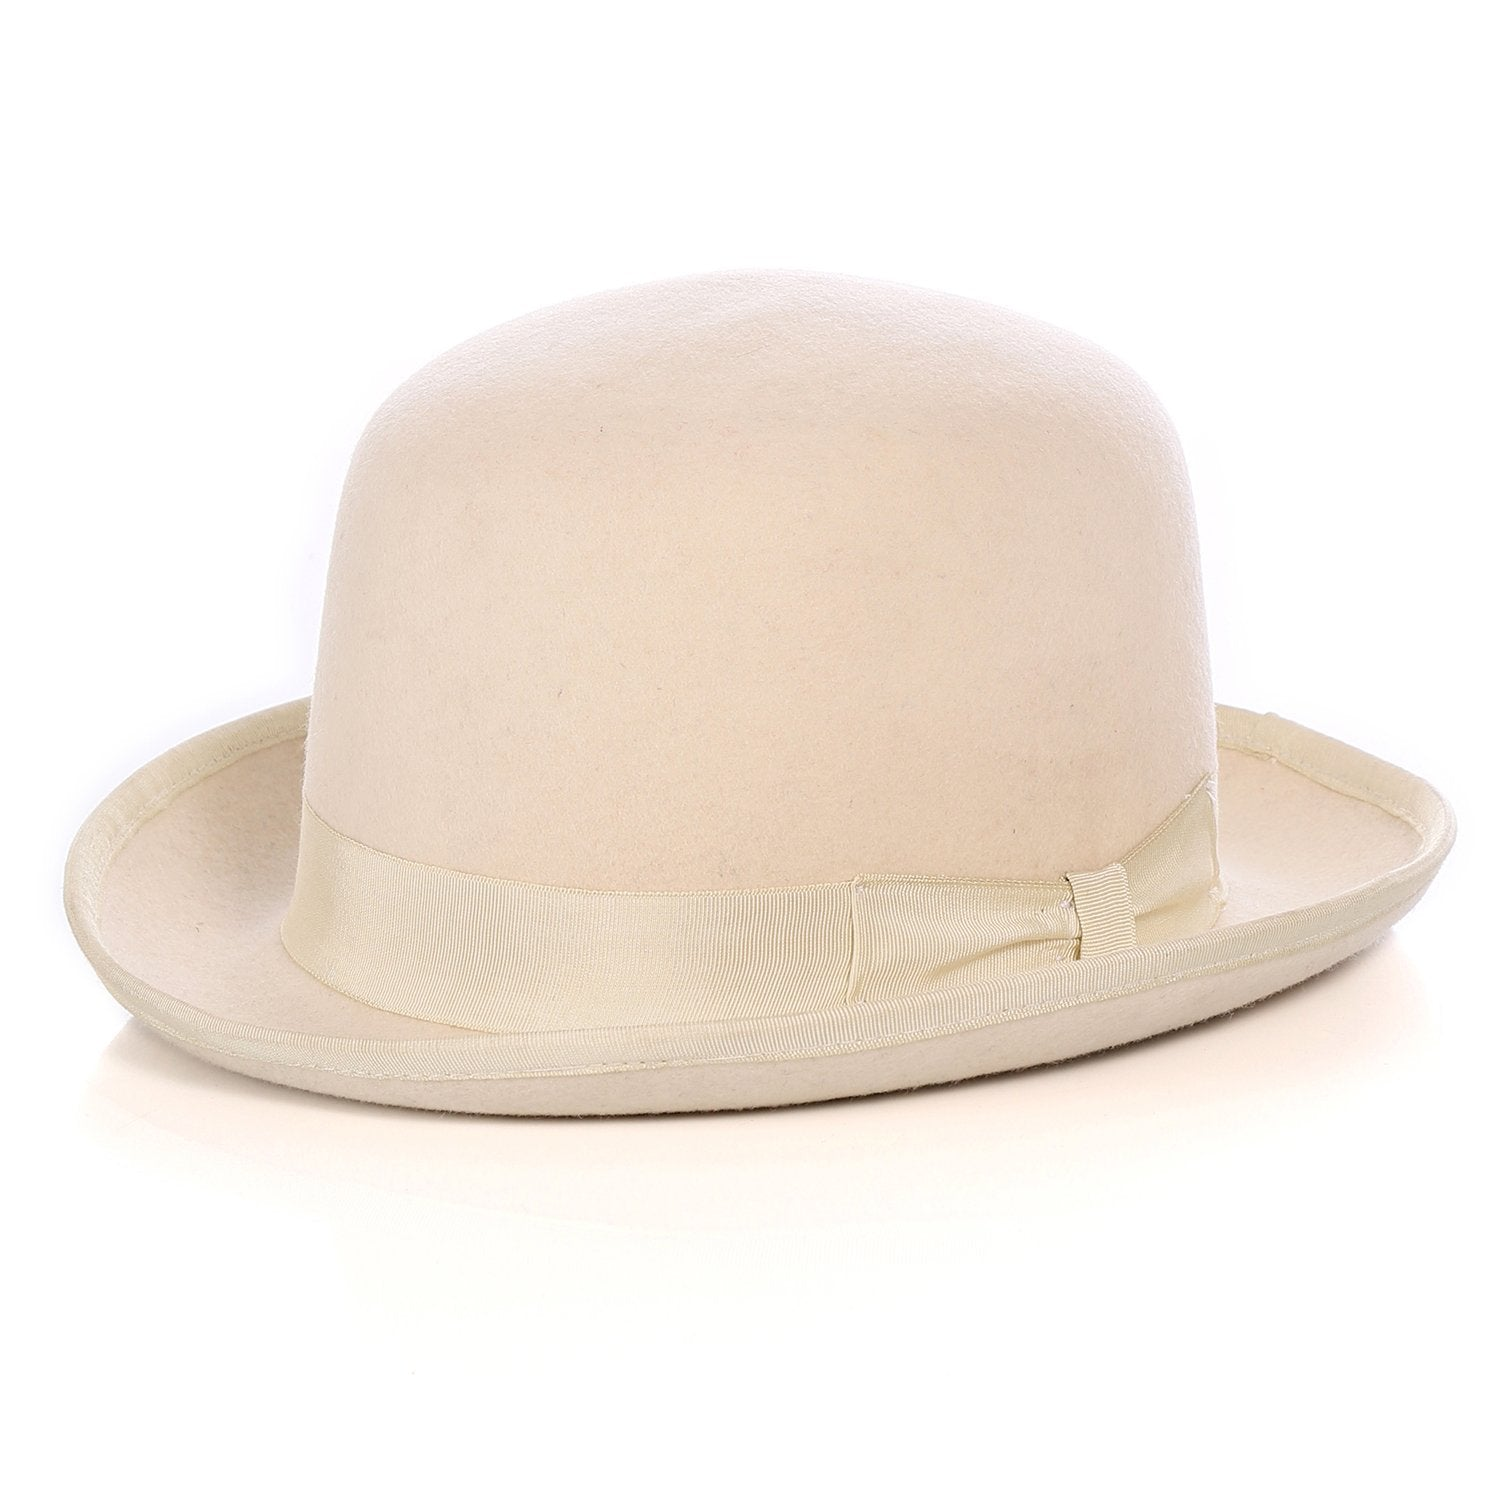 Premium Wool Off-White Derby Bowler Hat - Ferrecci USA